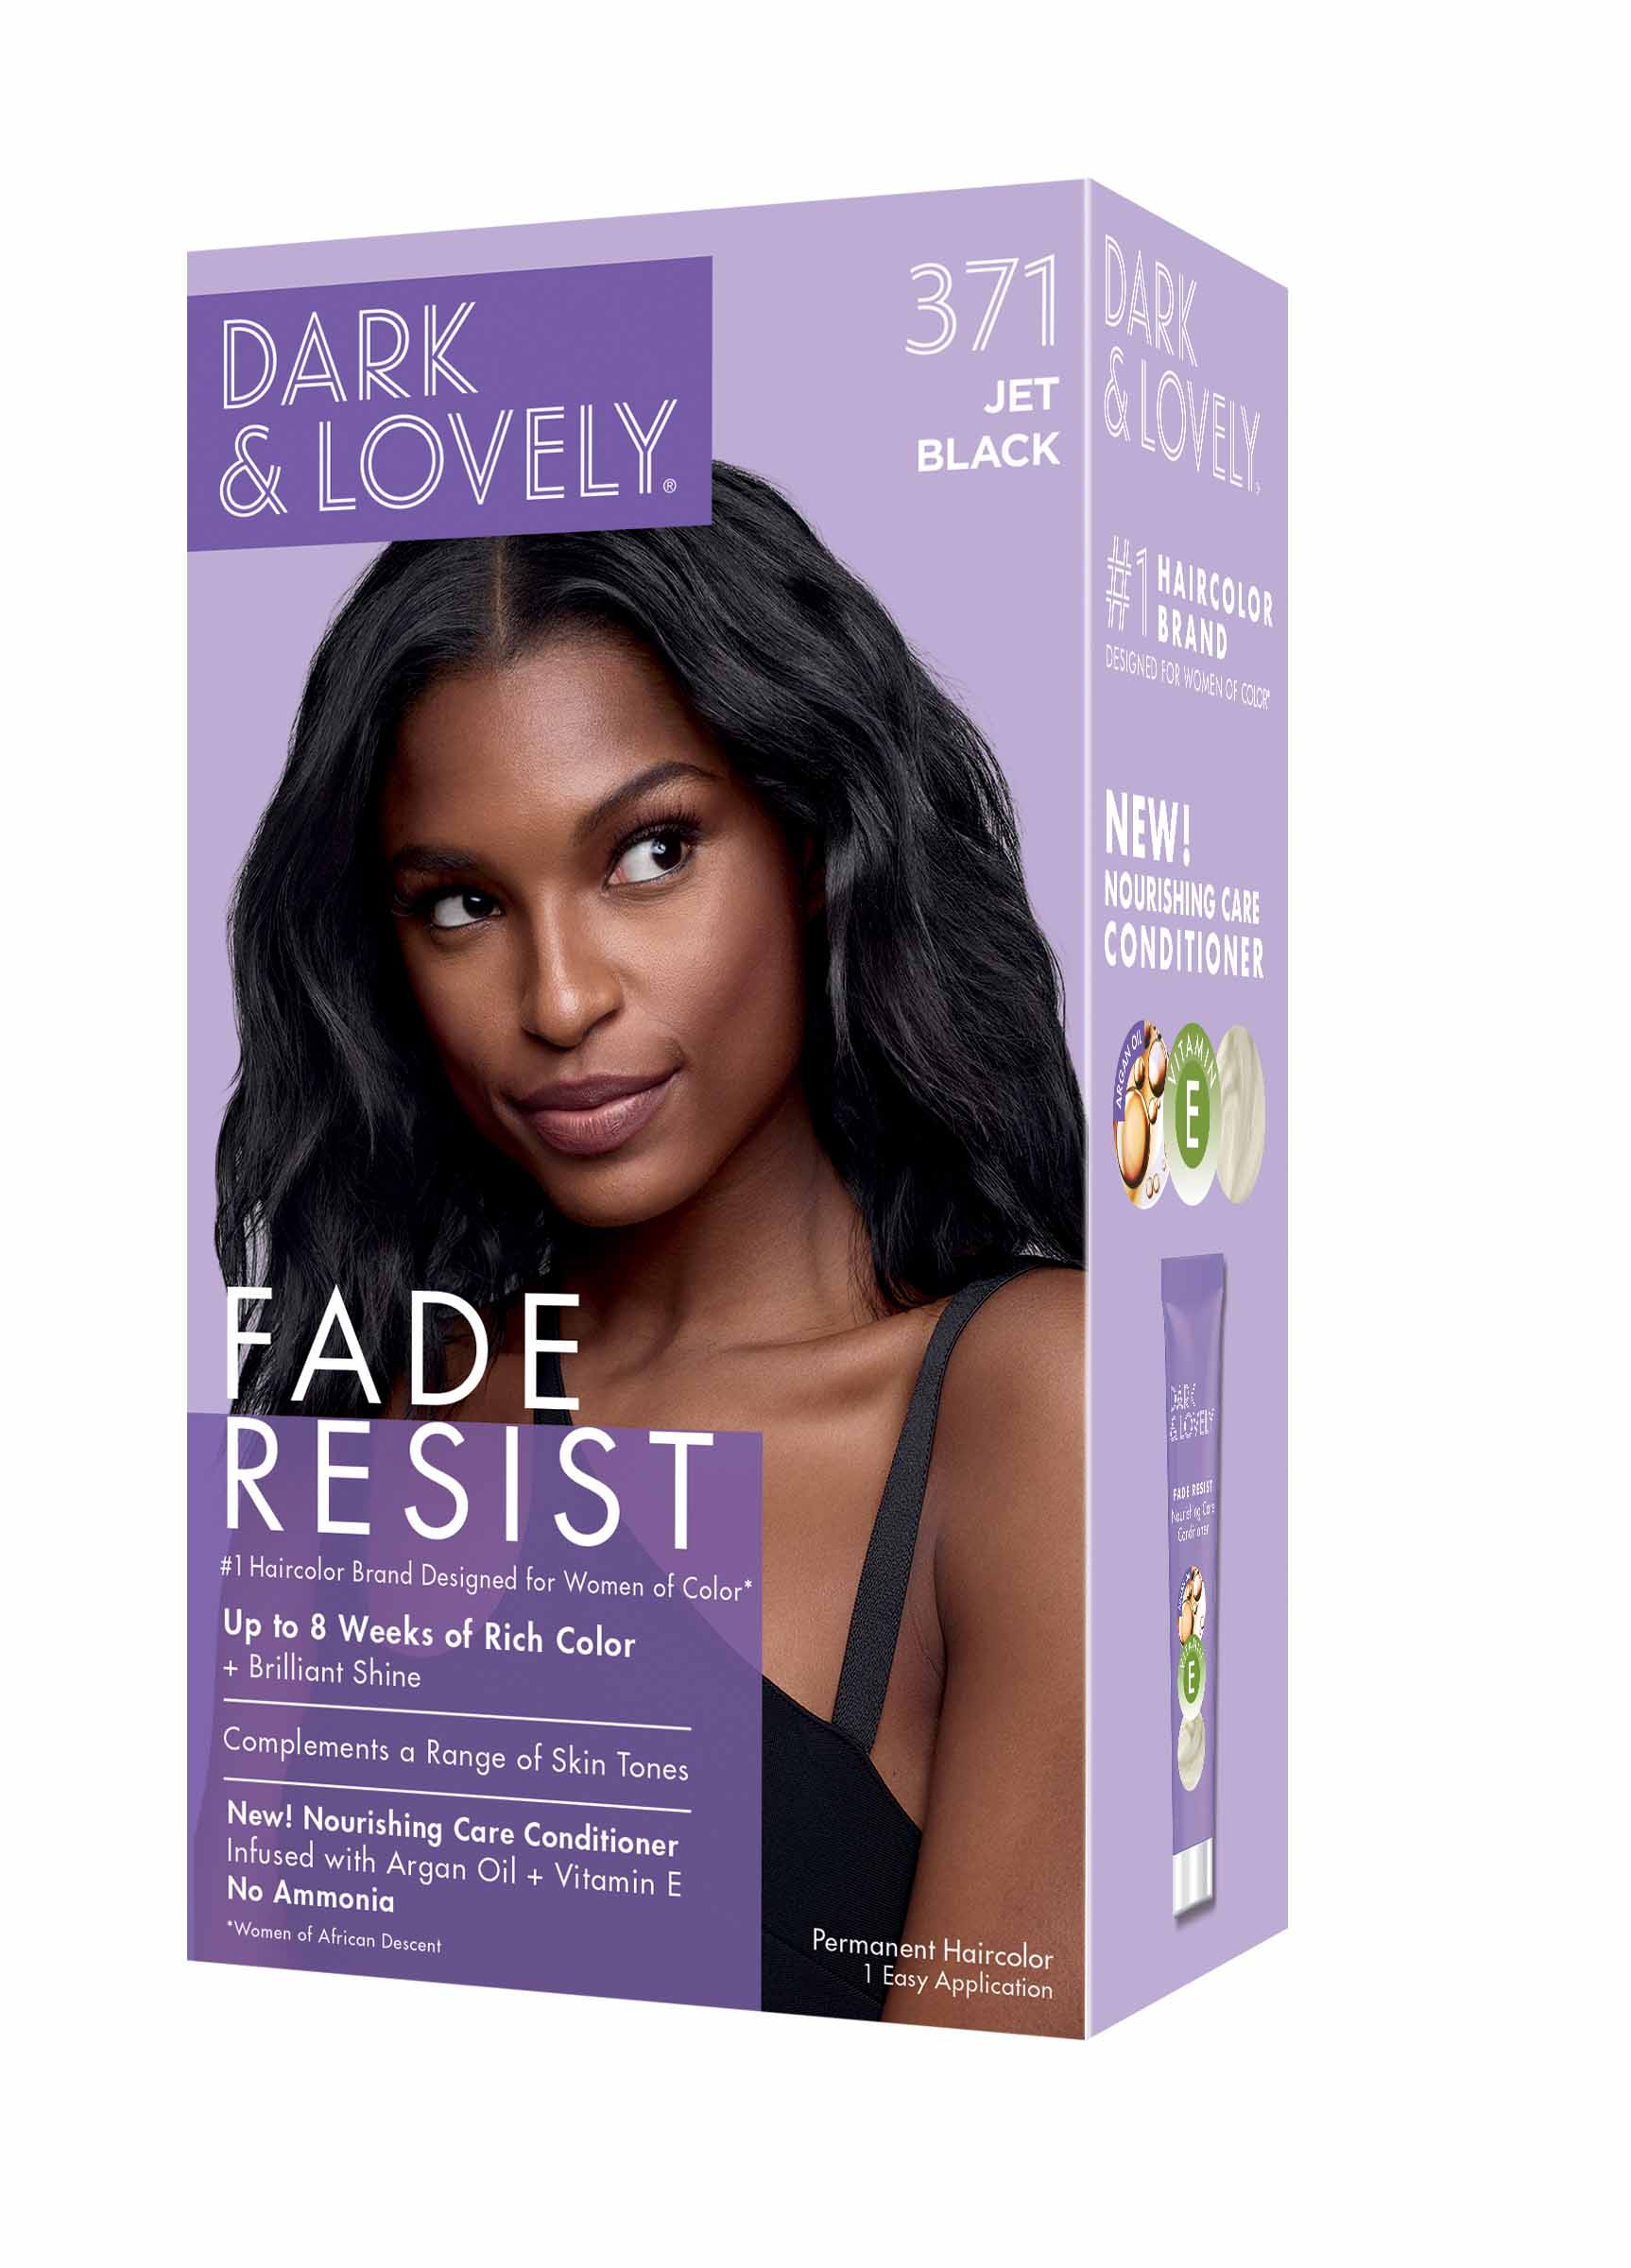 Dark and Lovely Fade Resistant Rich Conditioning Hair Color - Jet Black,371